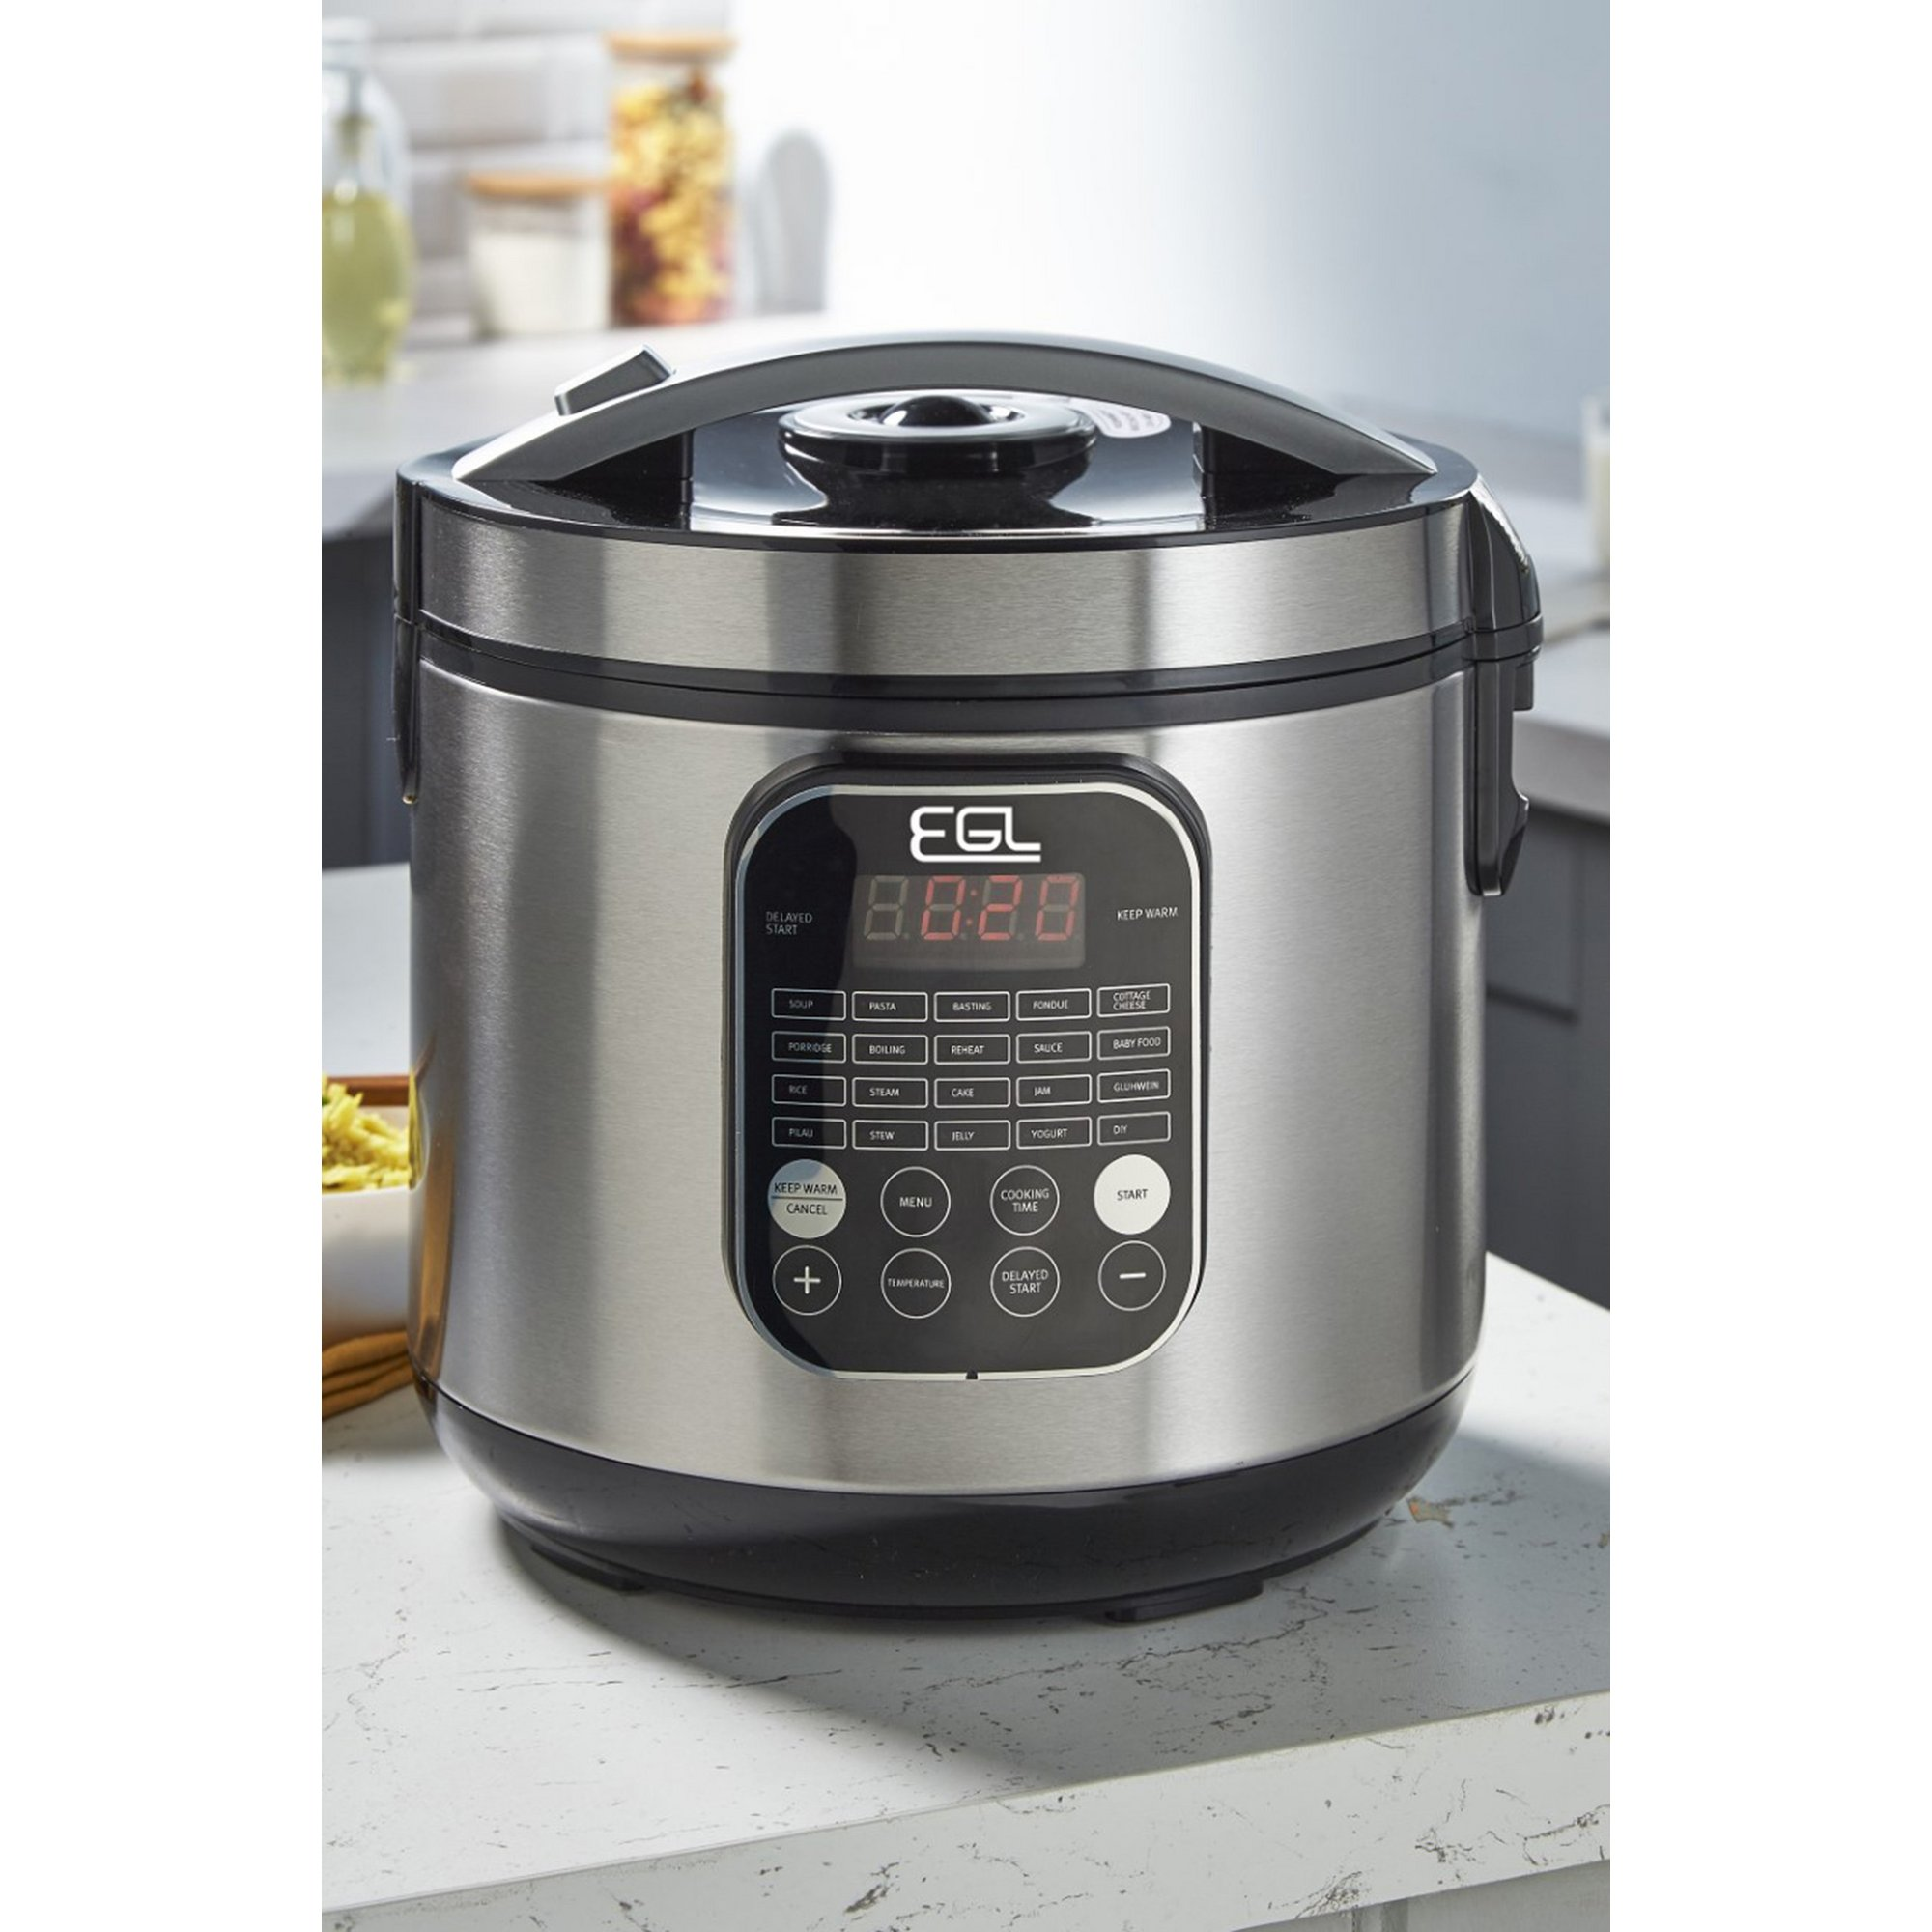 Image of 20-In-1 5 Litre Multi Cooker